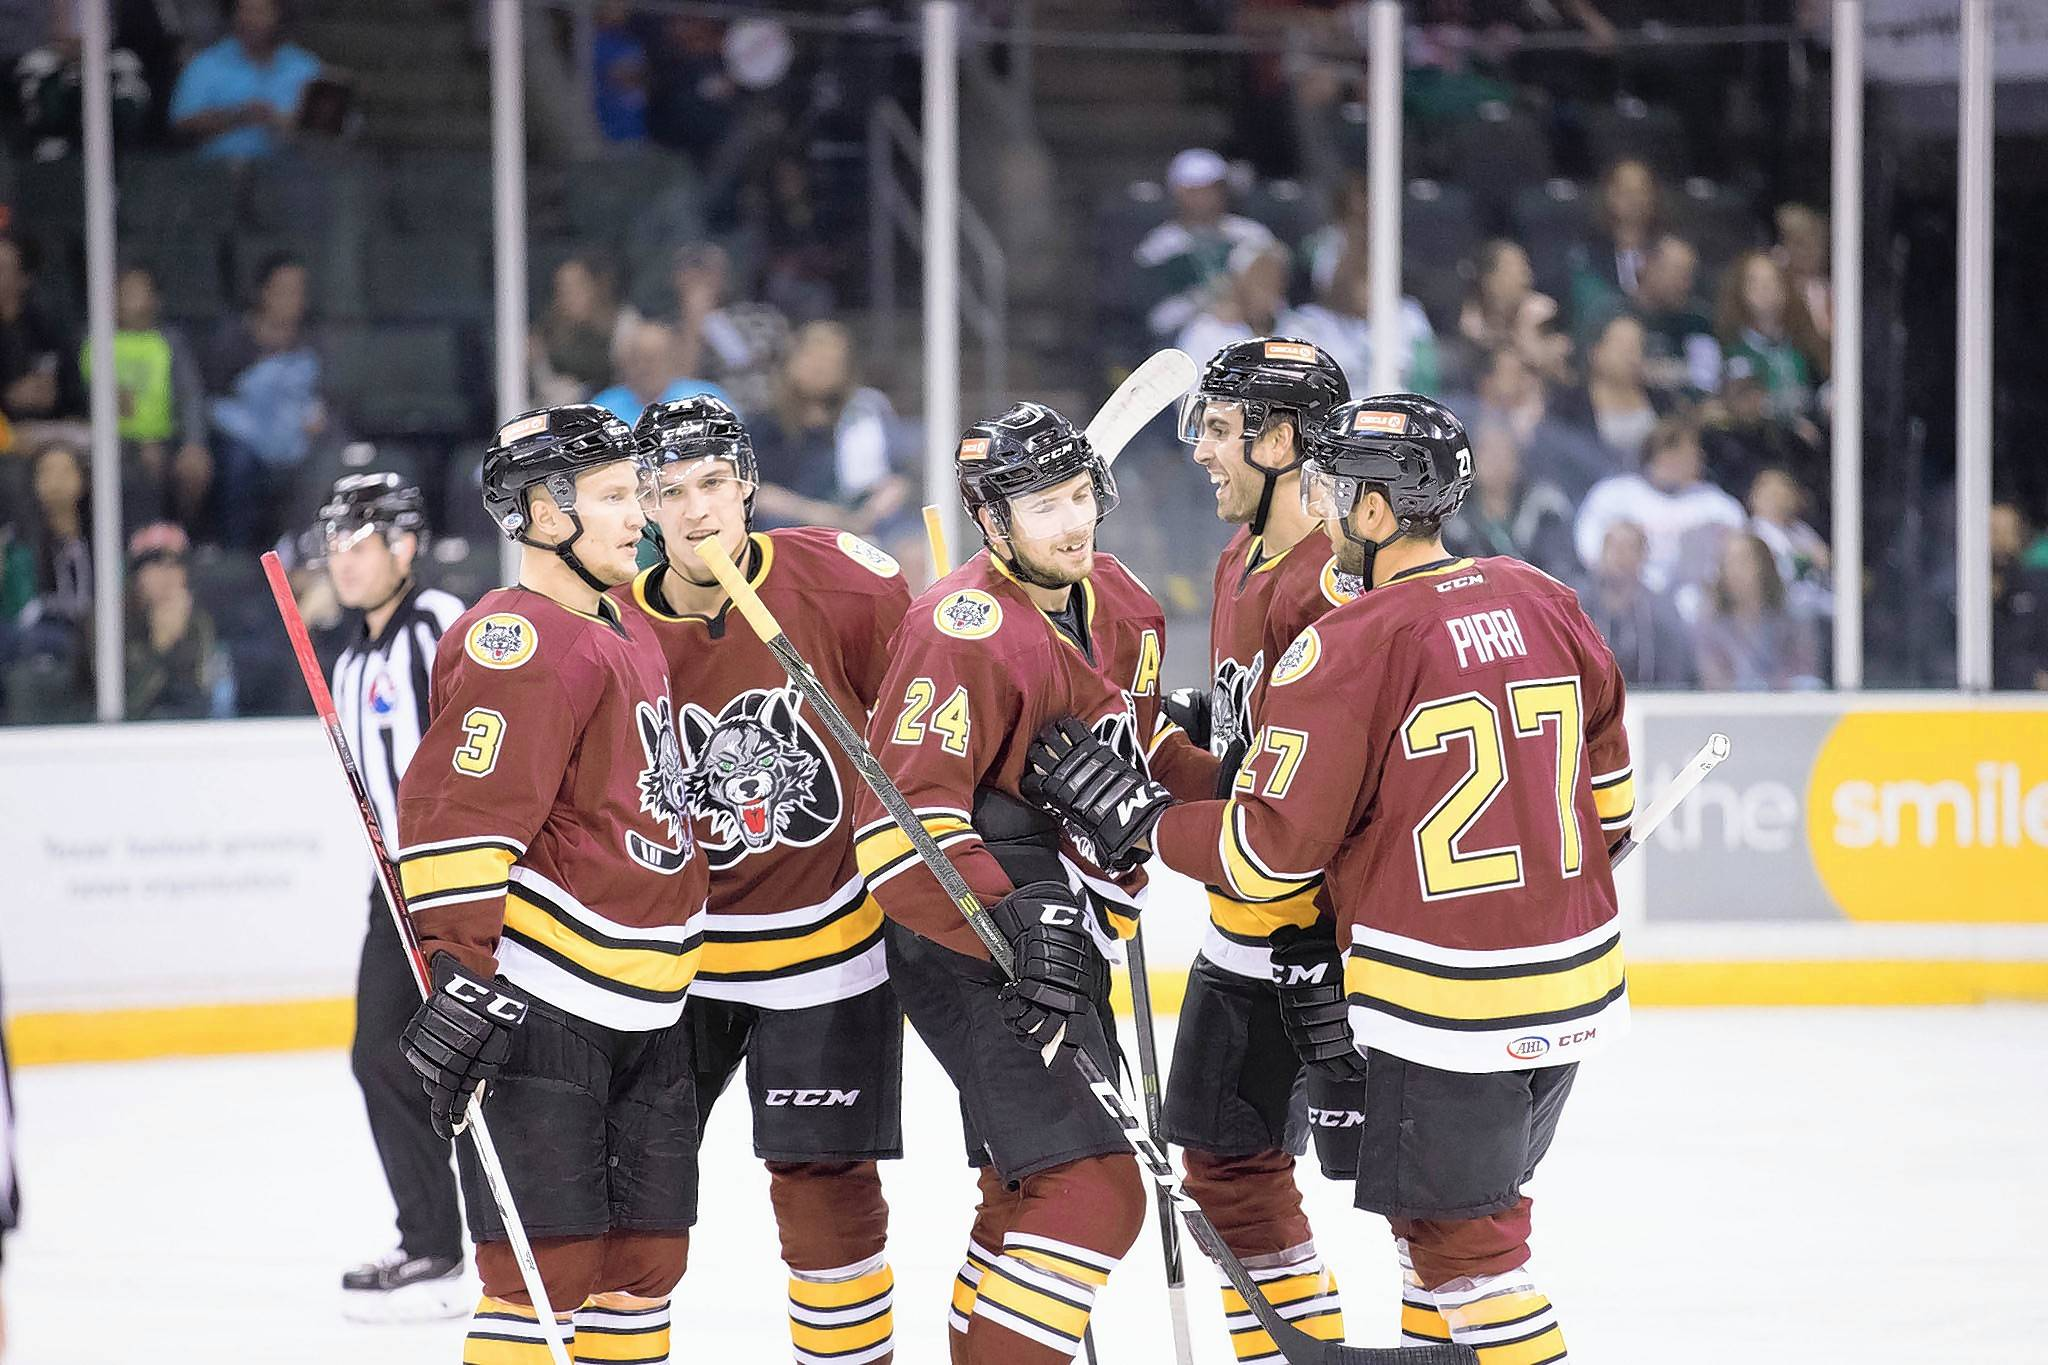 Chicago Wolves players Teemu Pulkkinen, left, Beau Bennett, Shea Theodore, Alex Tuch and Brandon Pirri celebrate a Theodore power-play goal on Oct. 7 at Texas.